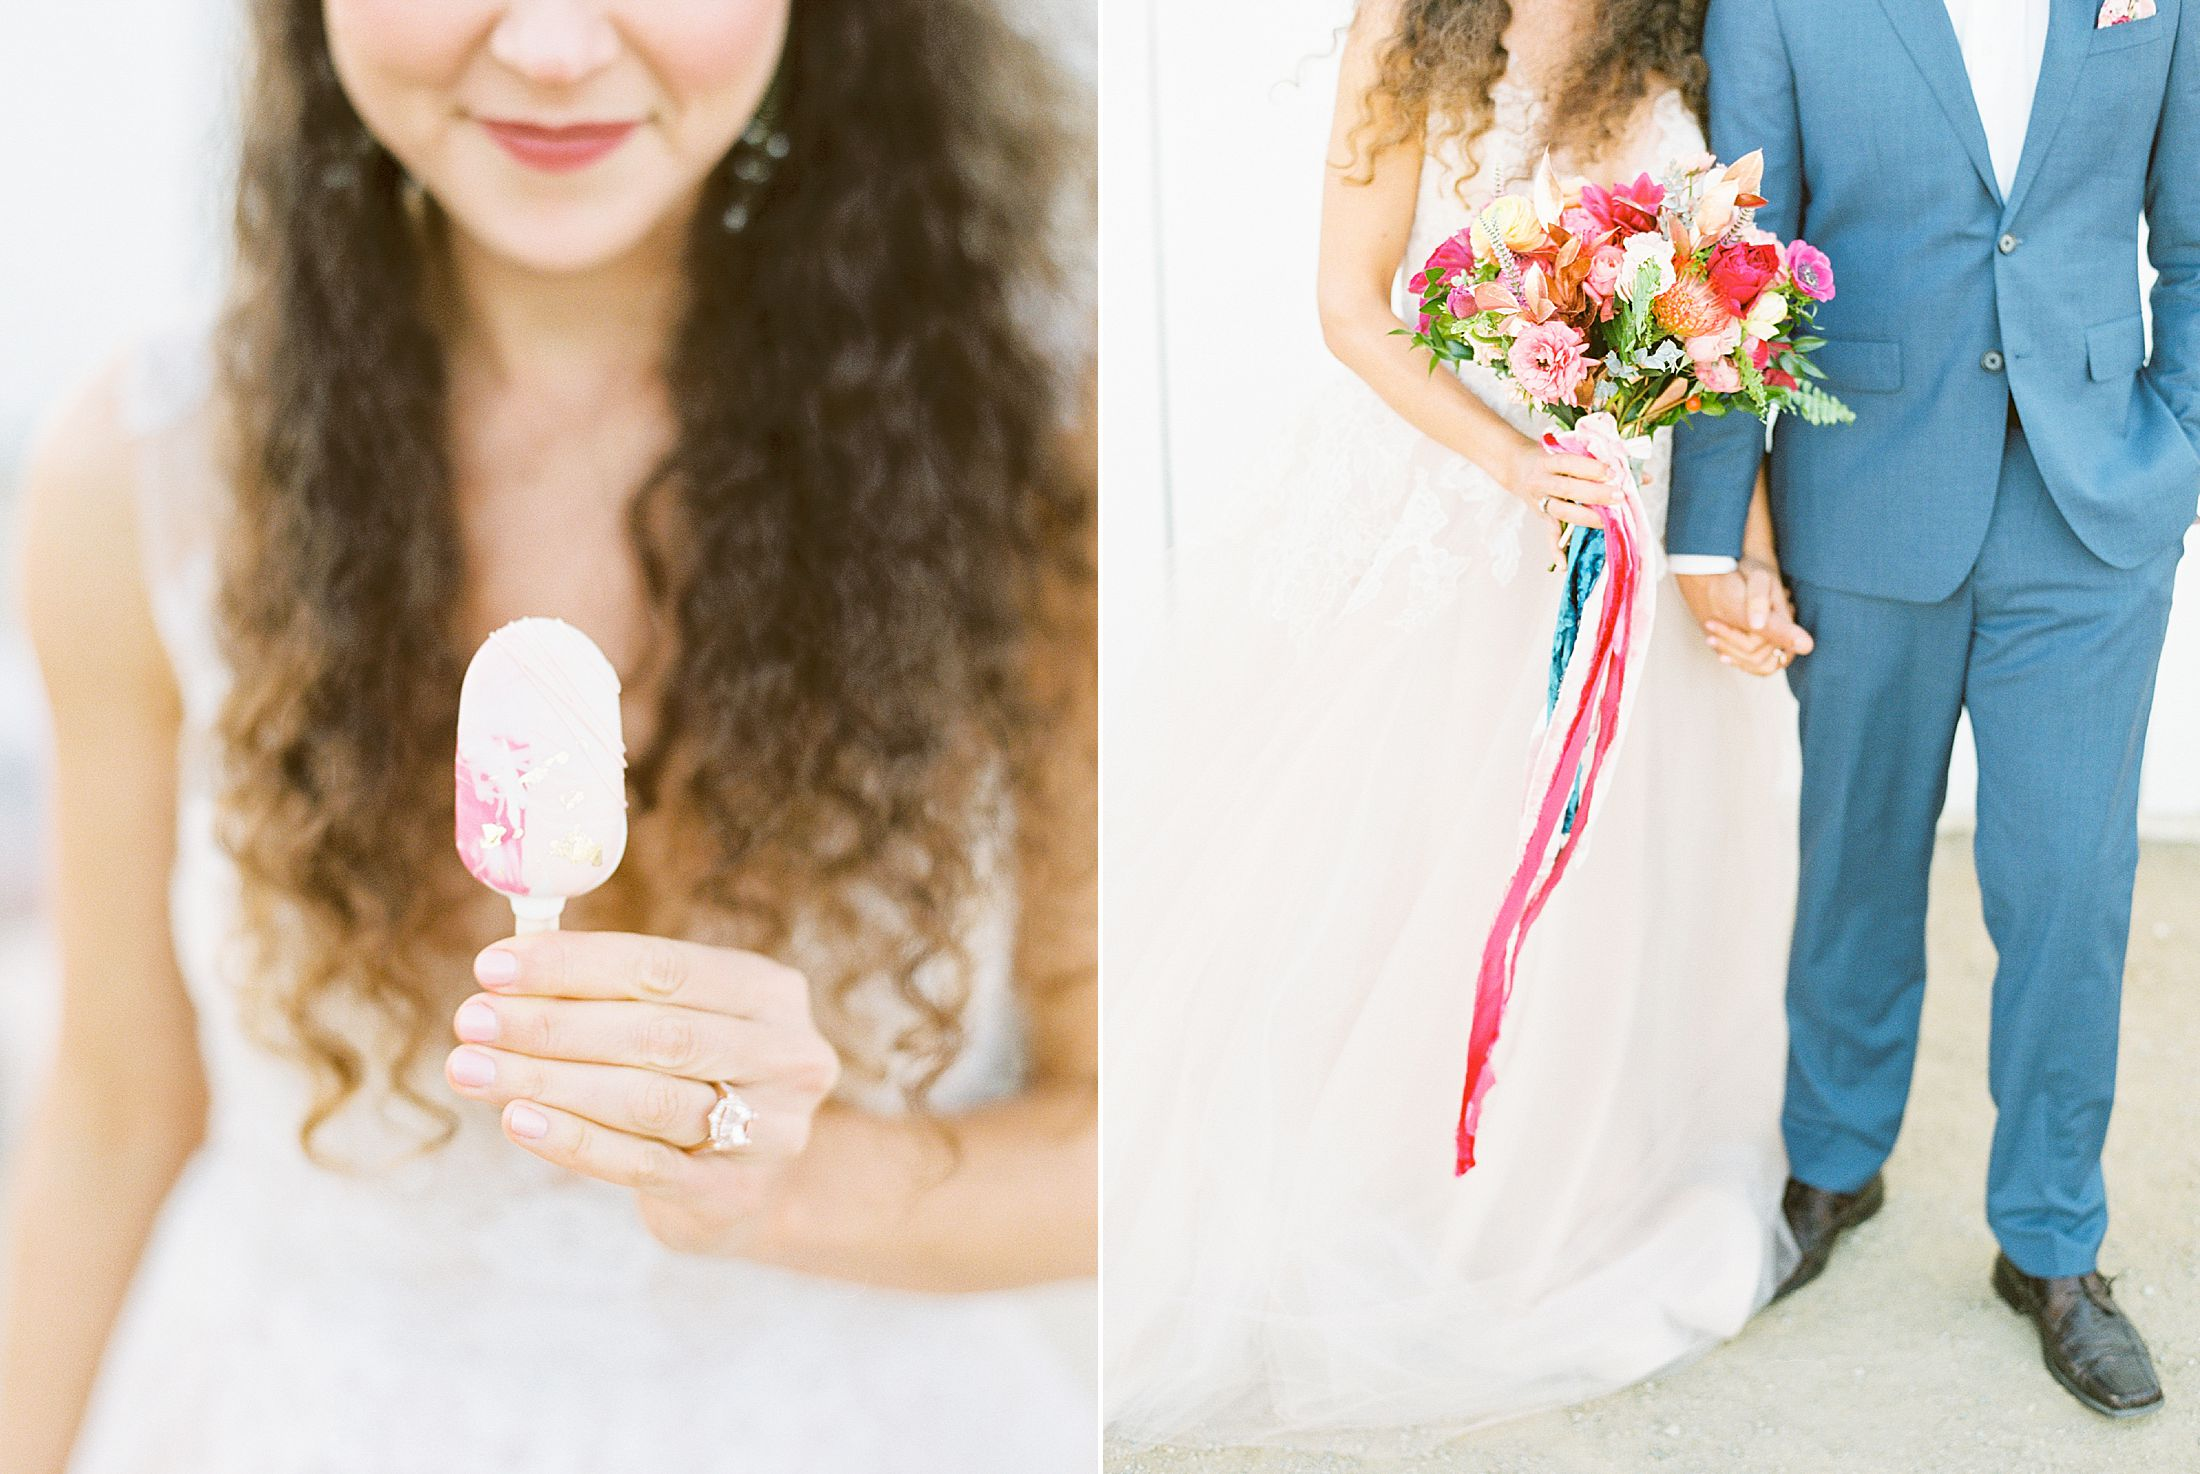 White Barn Edna Valley Wedding Inspiration - San Luis Obispo Wedding - Featured on Green Wedding Shoes - Ashley Baumgartner - FM Events SLO - SLO Wedding Photographer_0045.jpg